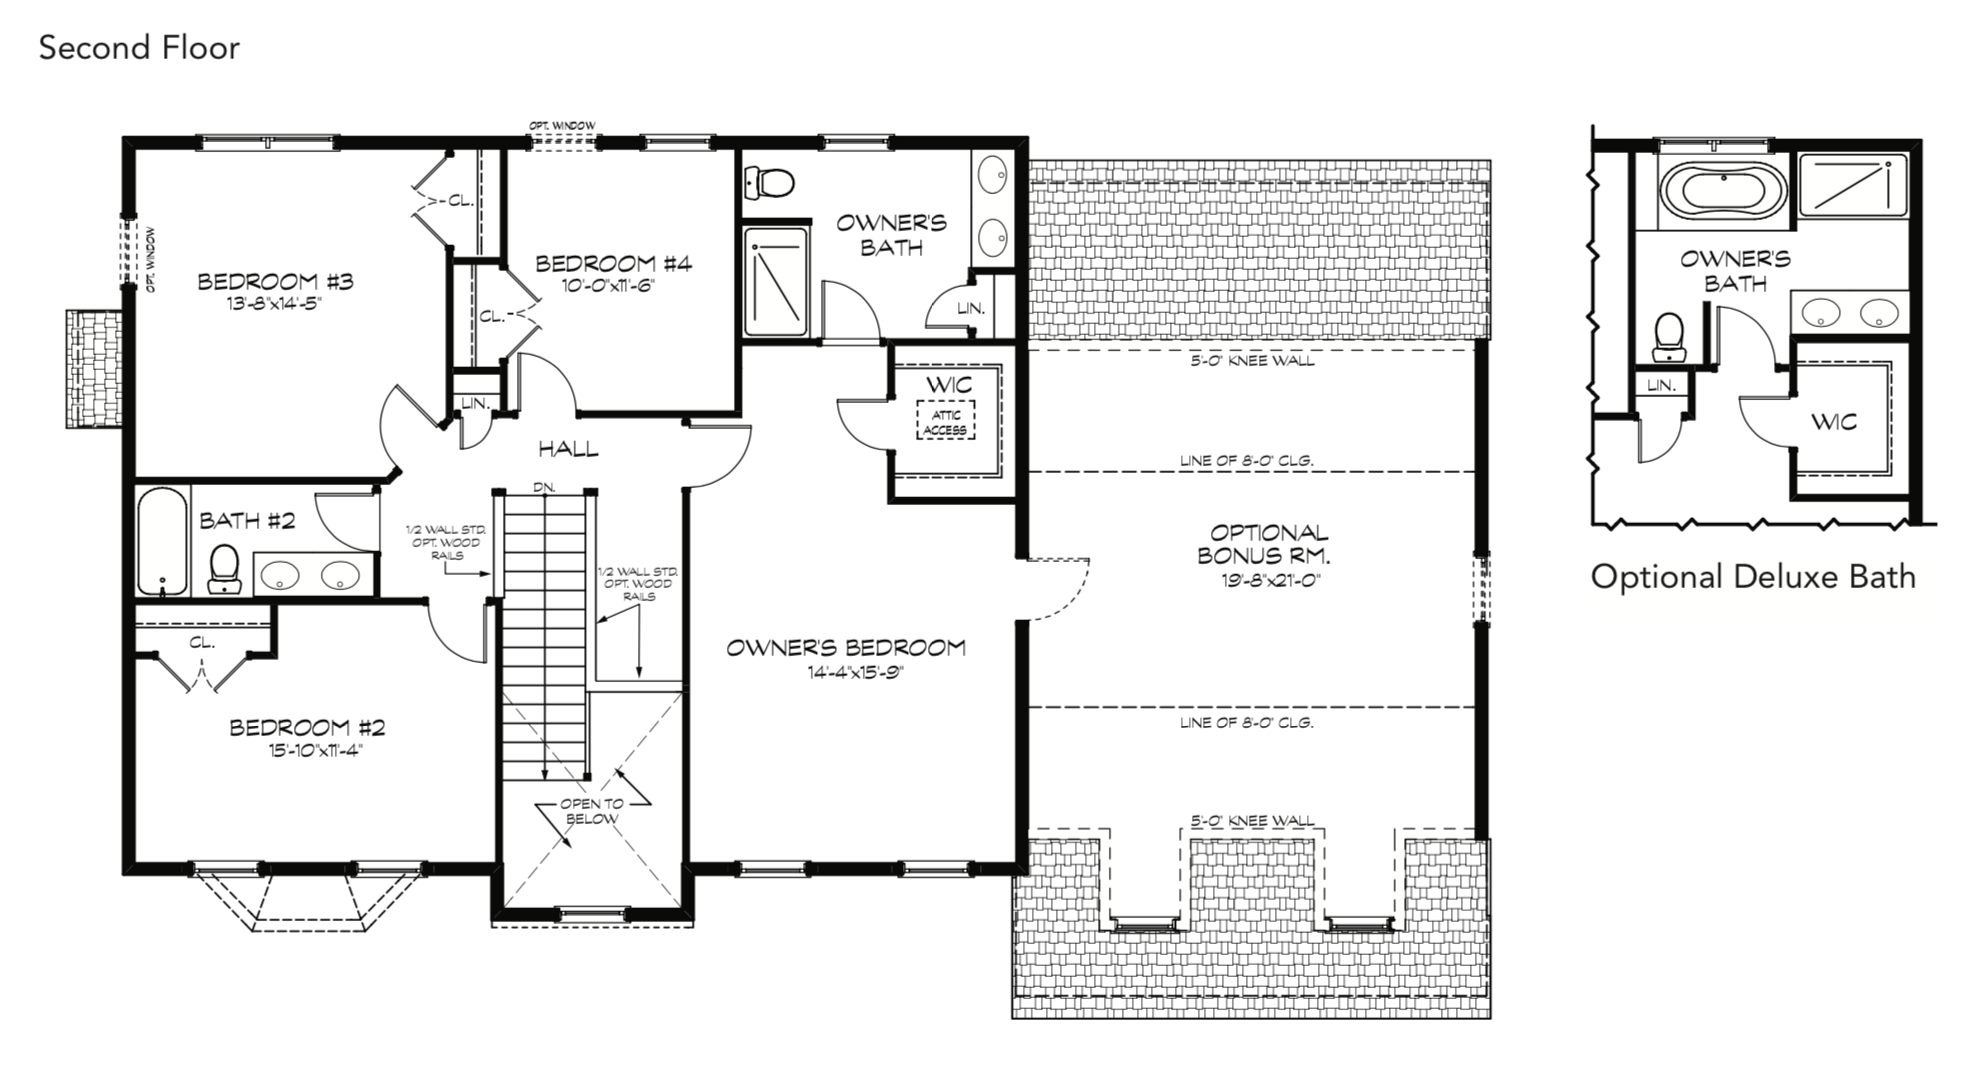 Single Family Homes – Ponds of Odessa : Benchmark Builders on loft house plans, texas ranch house plans, 4-bedroom ranch house plans, ranch country house plans, western ranch house plans, walkout ranch house plans, ranch house with basement, 8 bedroom ranch house plans, ranch house plans with porches, luxury ranch home plans, luxury house plans, one story house plans, ranch house layout, classic ranch house plans, rustic ranch house plans, ranch house design, unique ranch house plans, ranch house with garage, ranch house plans awesome, ranch house kitchens,